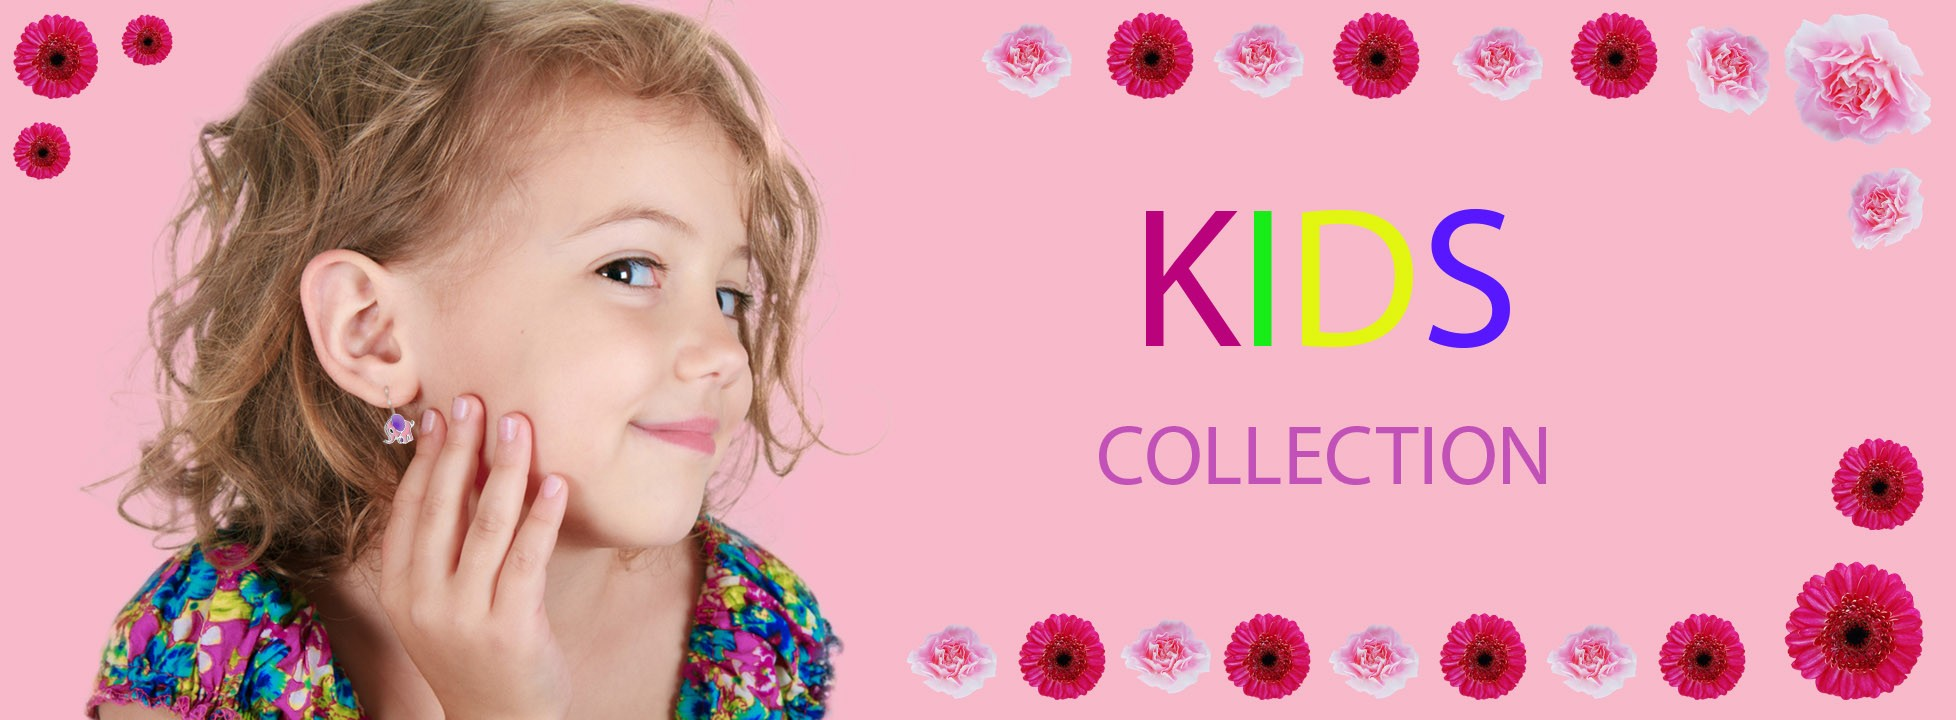 Kids jewellery collection